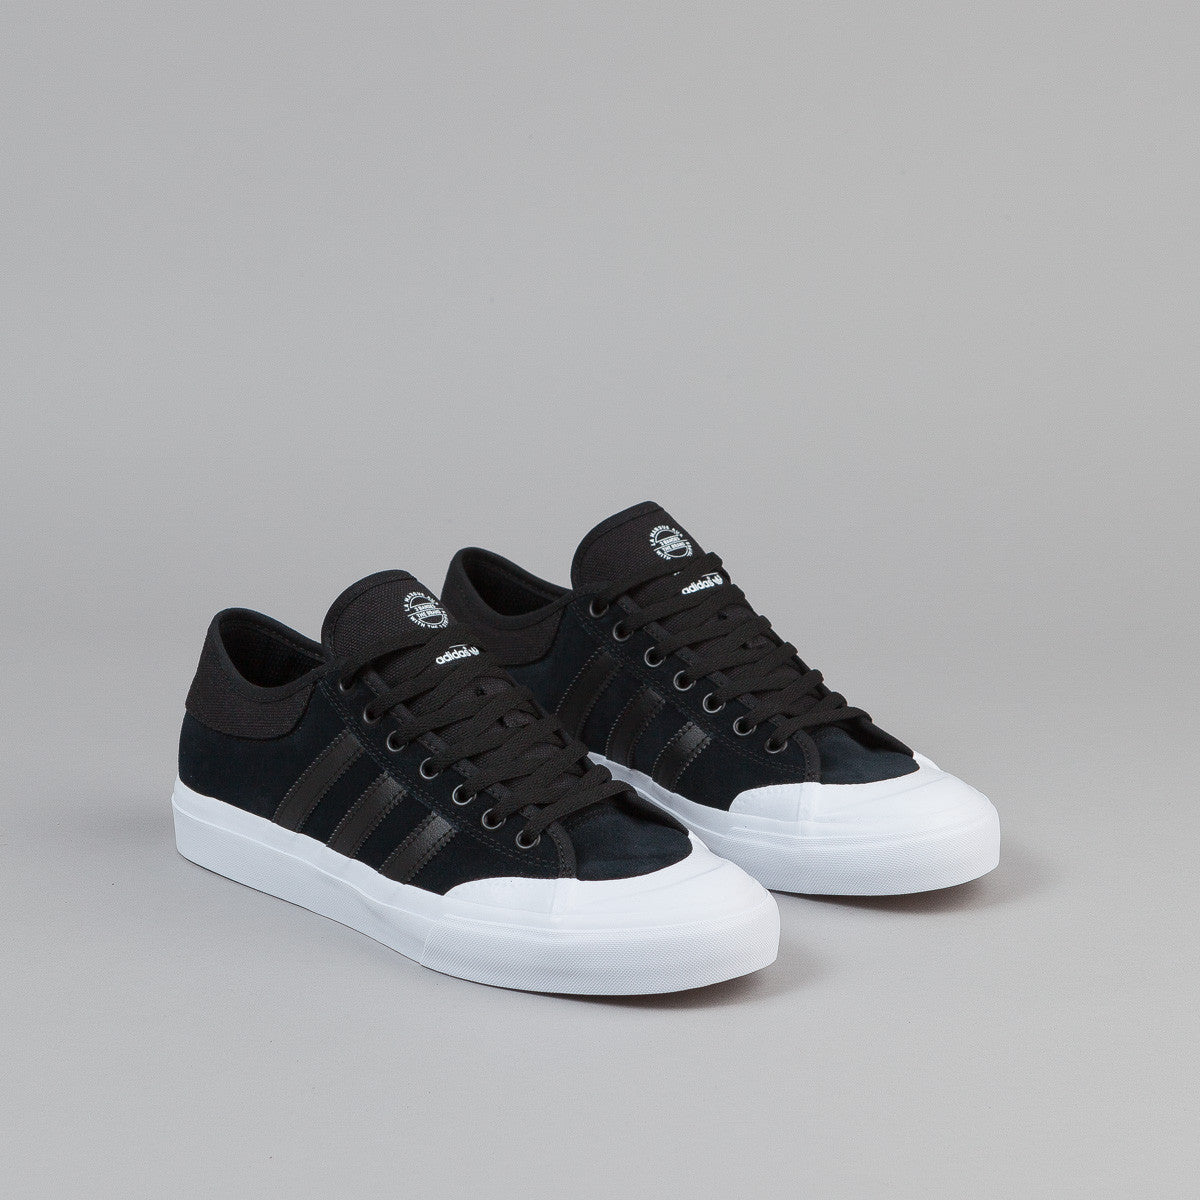 Adidas Matchcourt Shoes Core Black Core Black Ftw